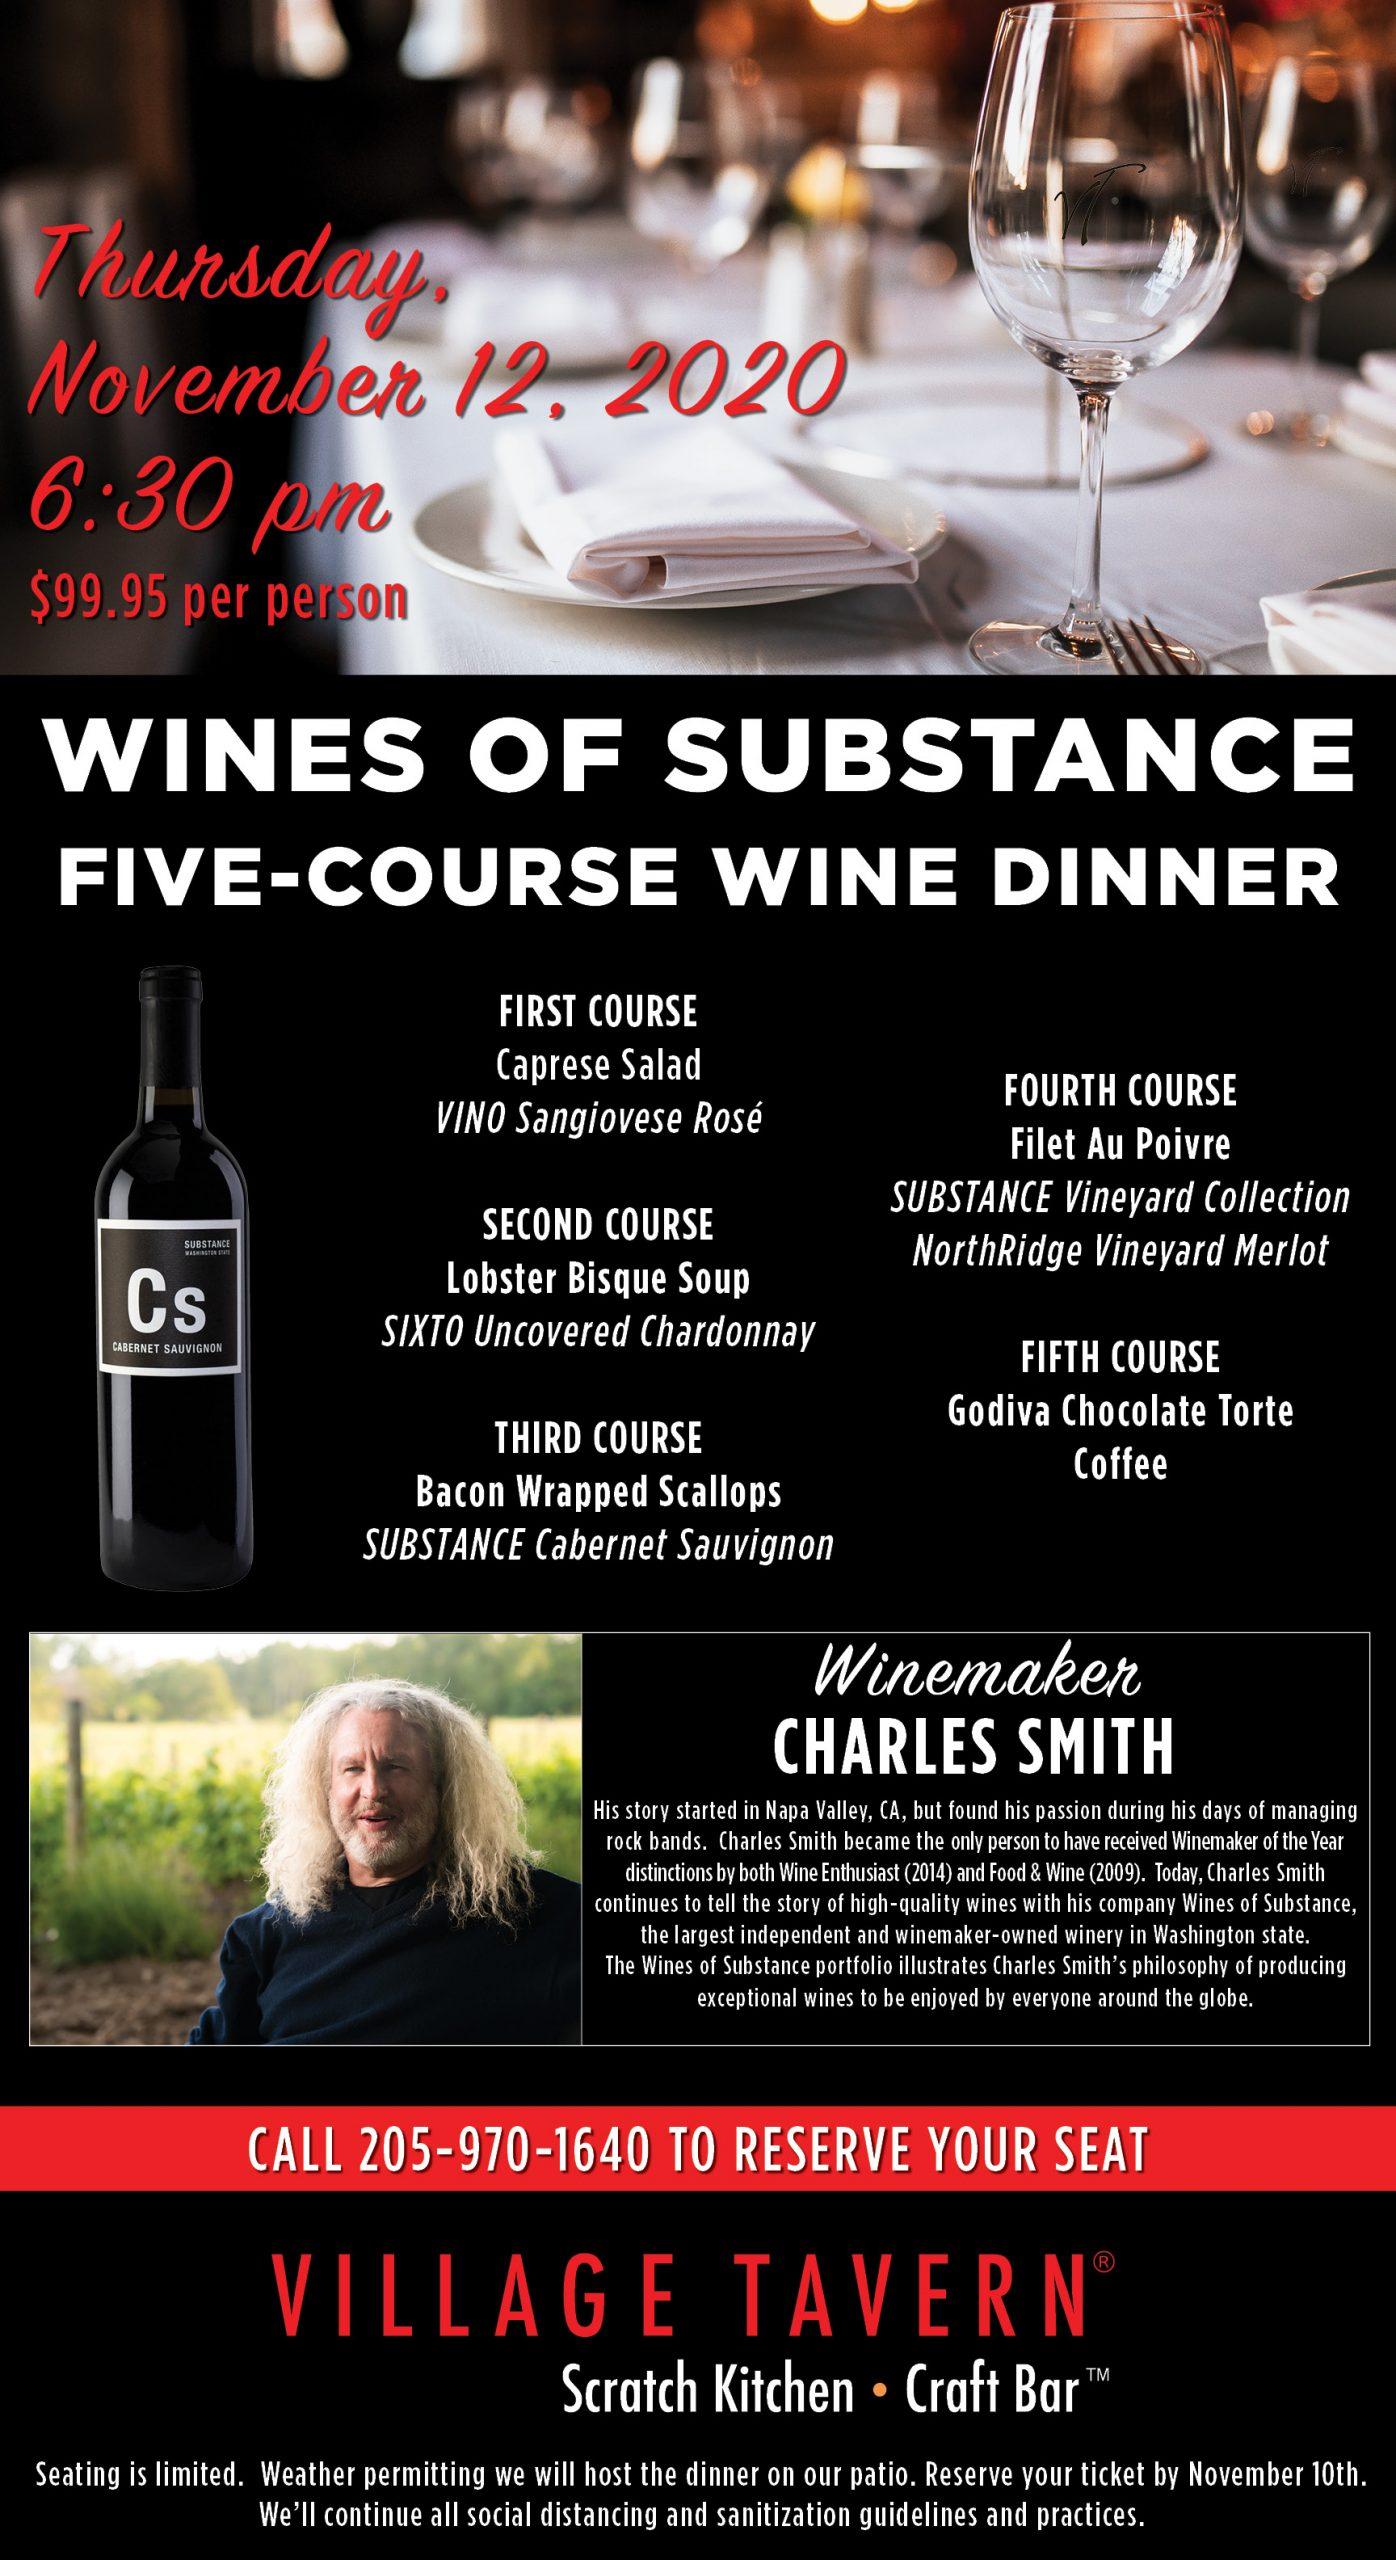 Wines of Substance by Charles Smith, Five-Course Wine Dinner